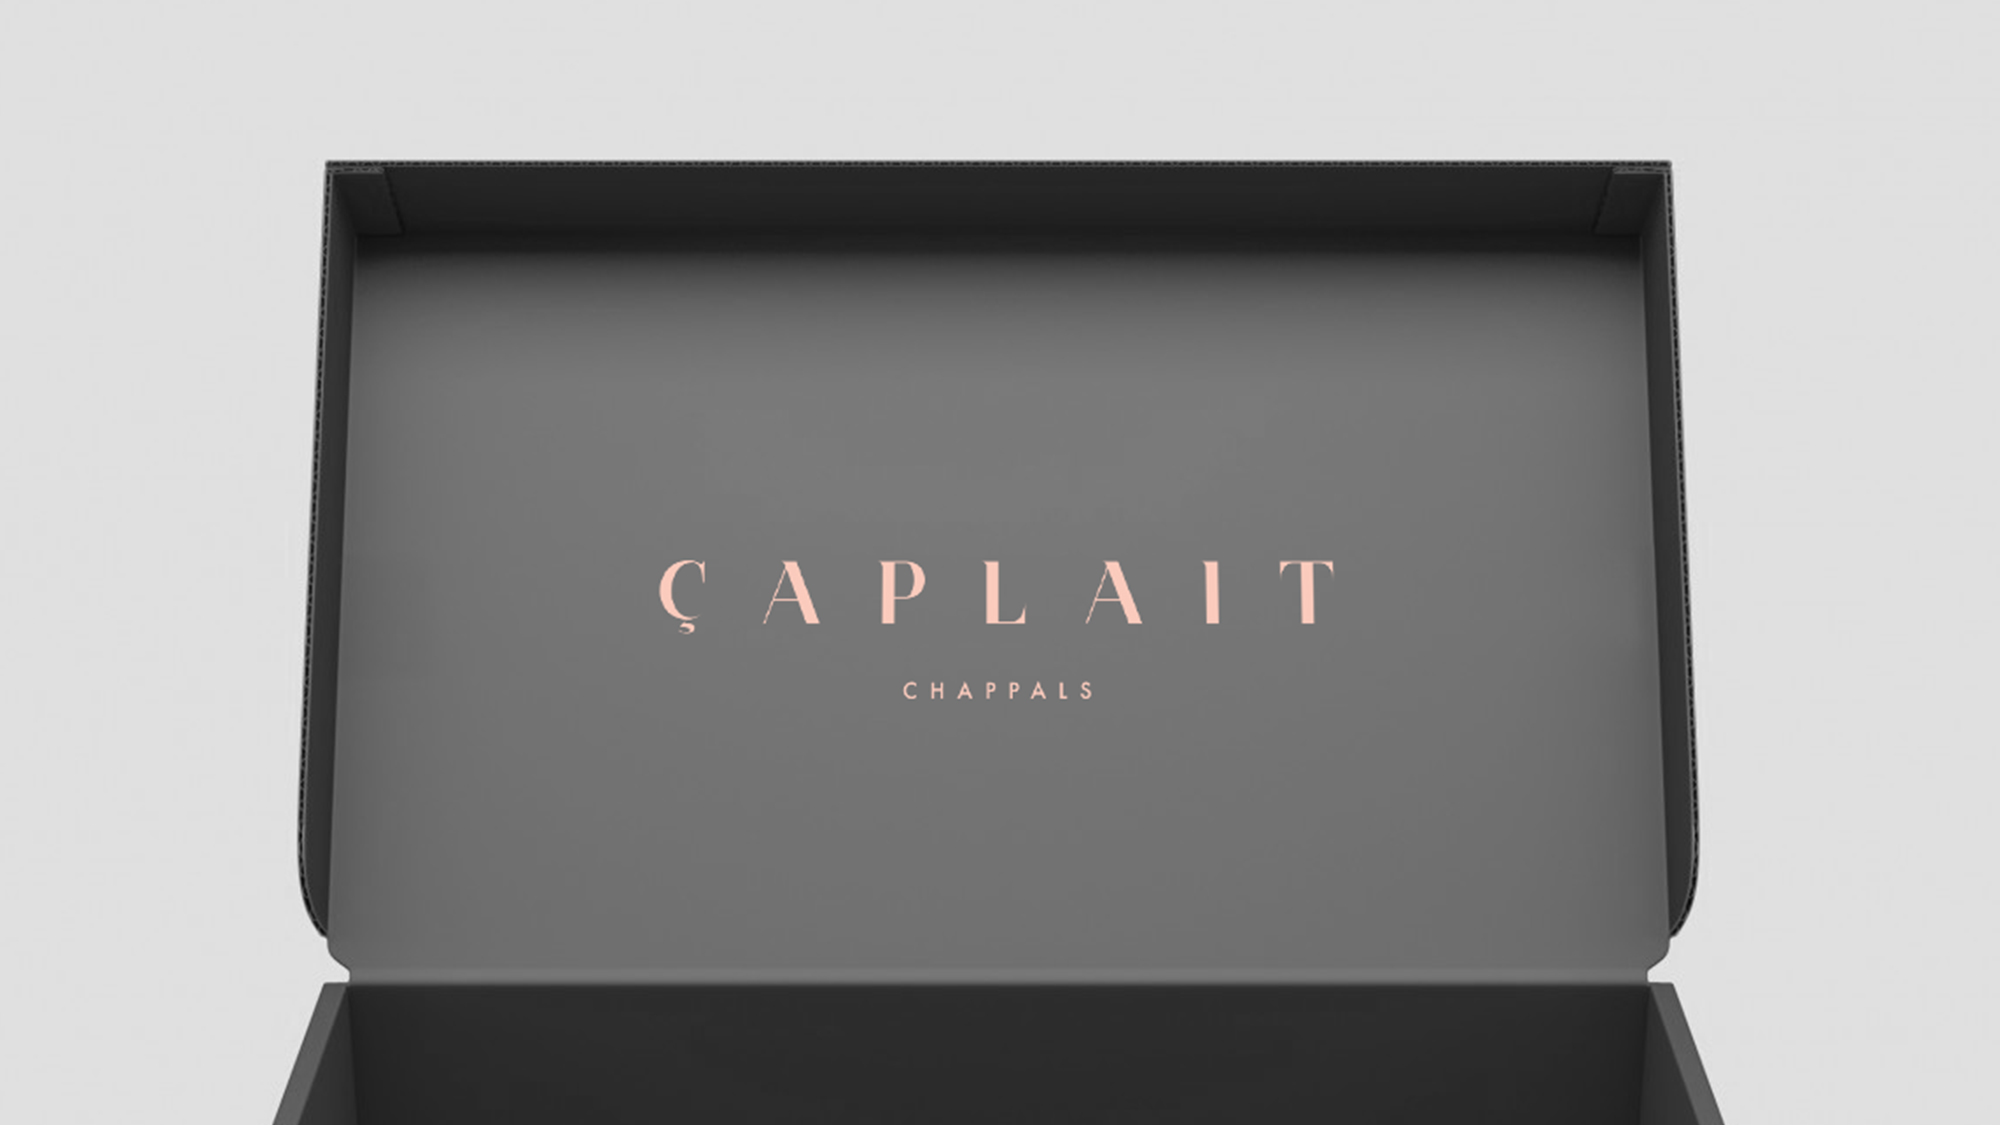 Caplait